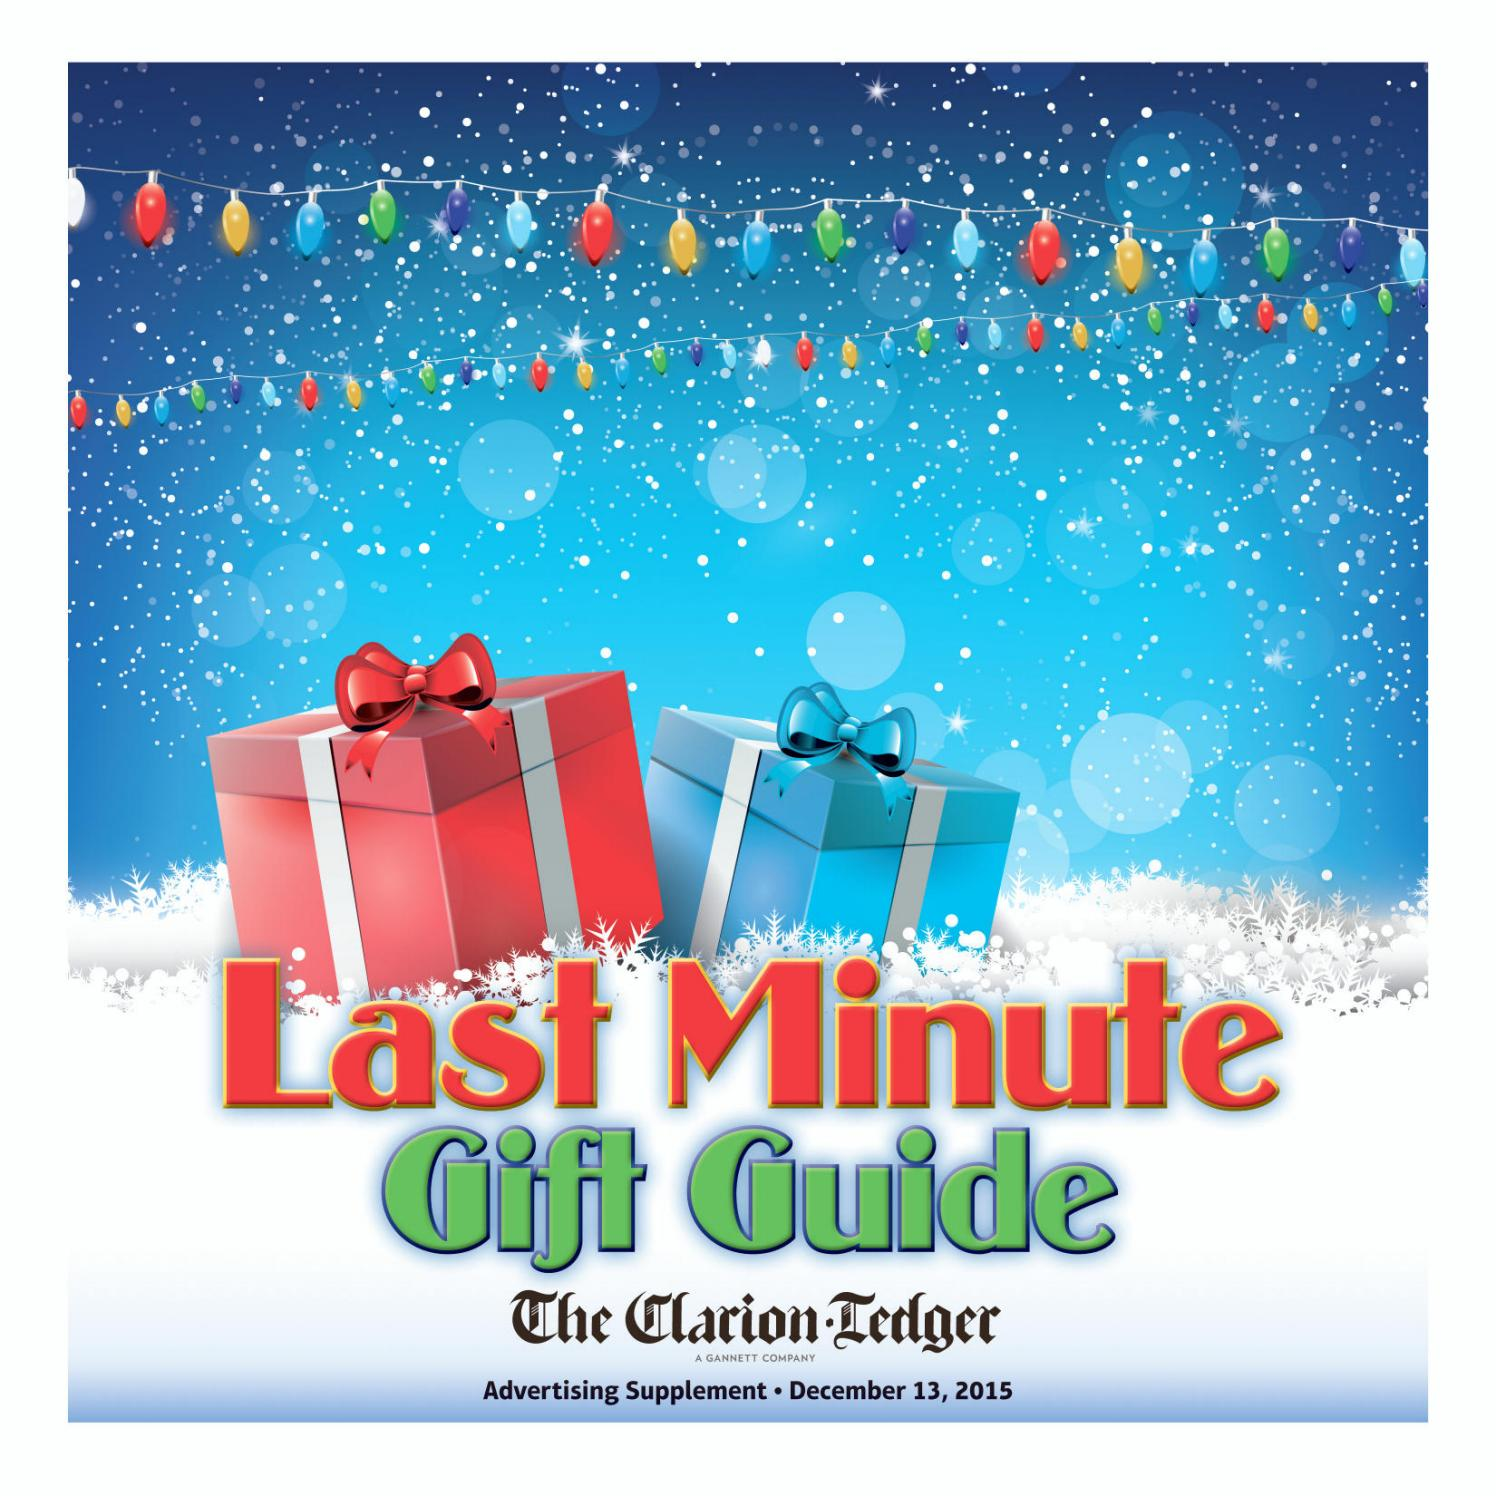 Last Minute Gift Guide 2015 by The Clarion Ledger issuu